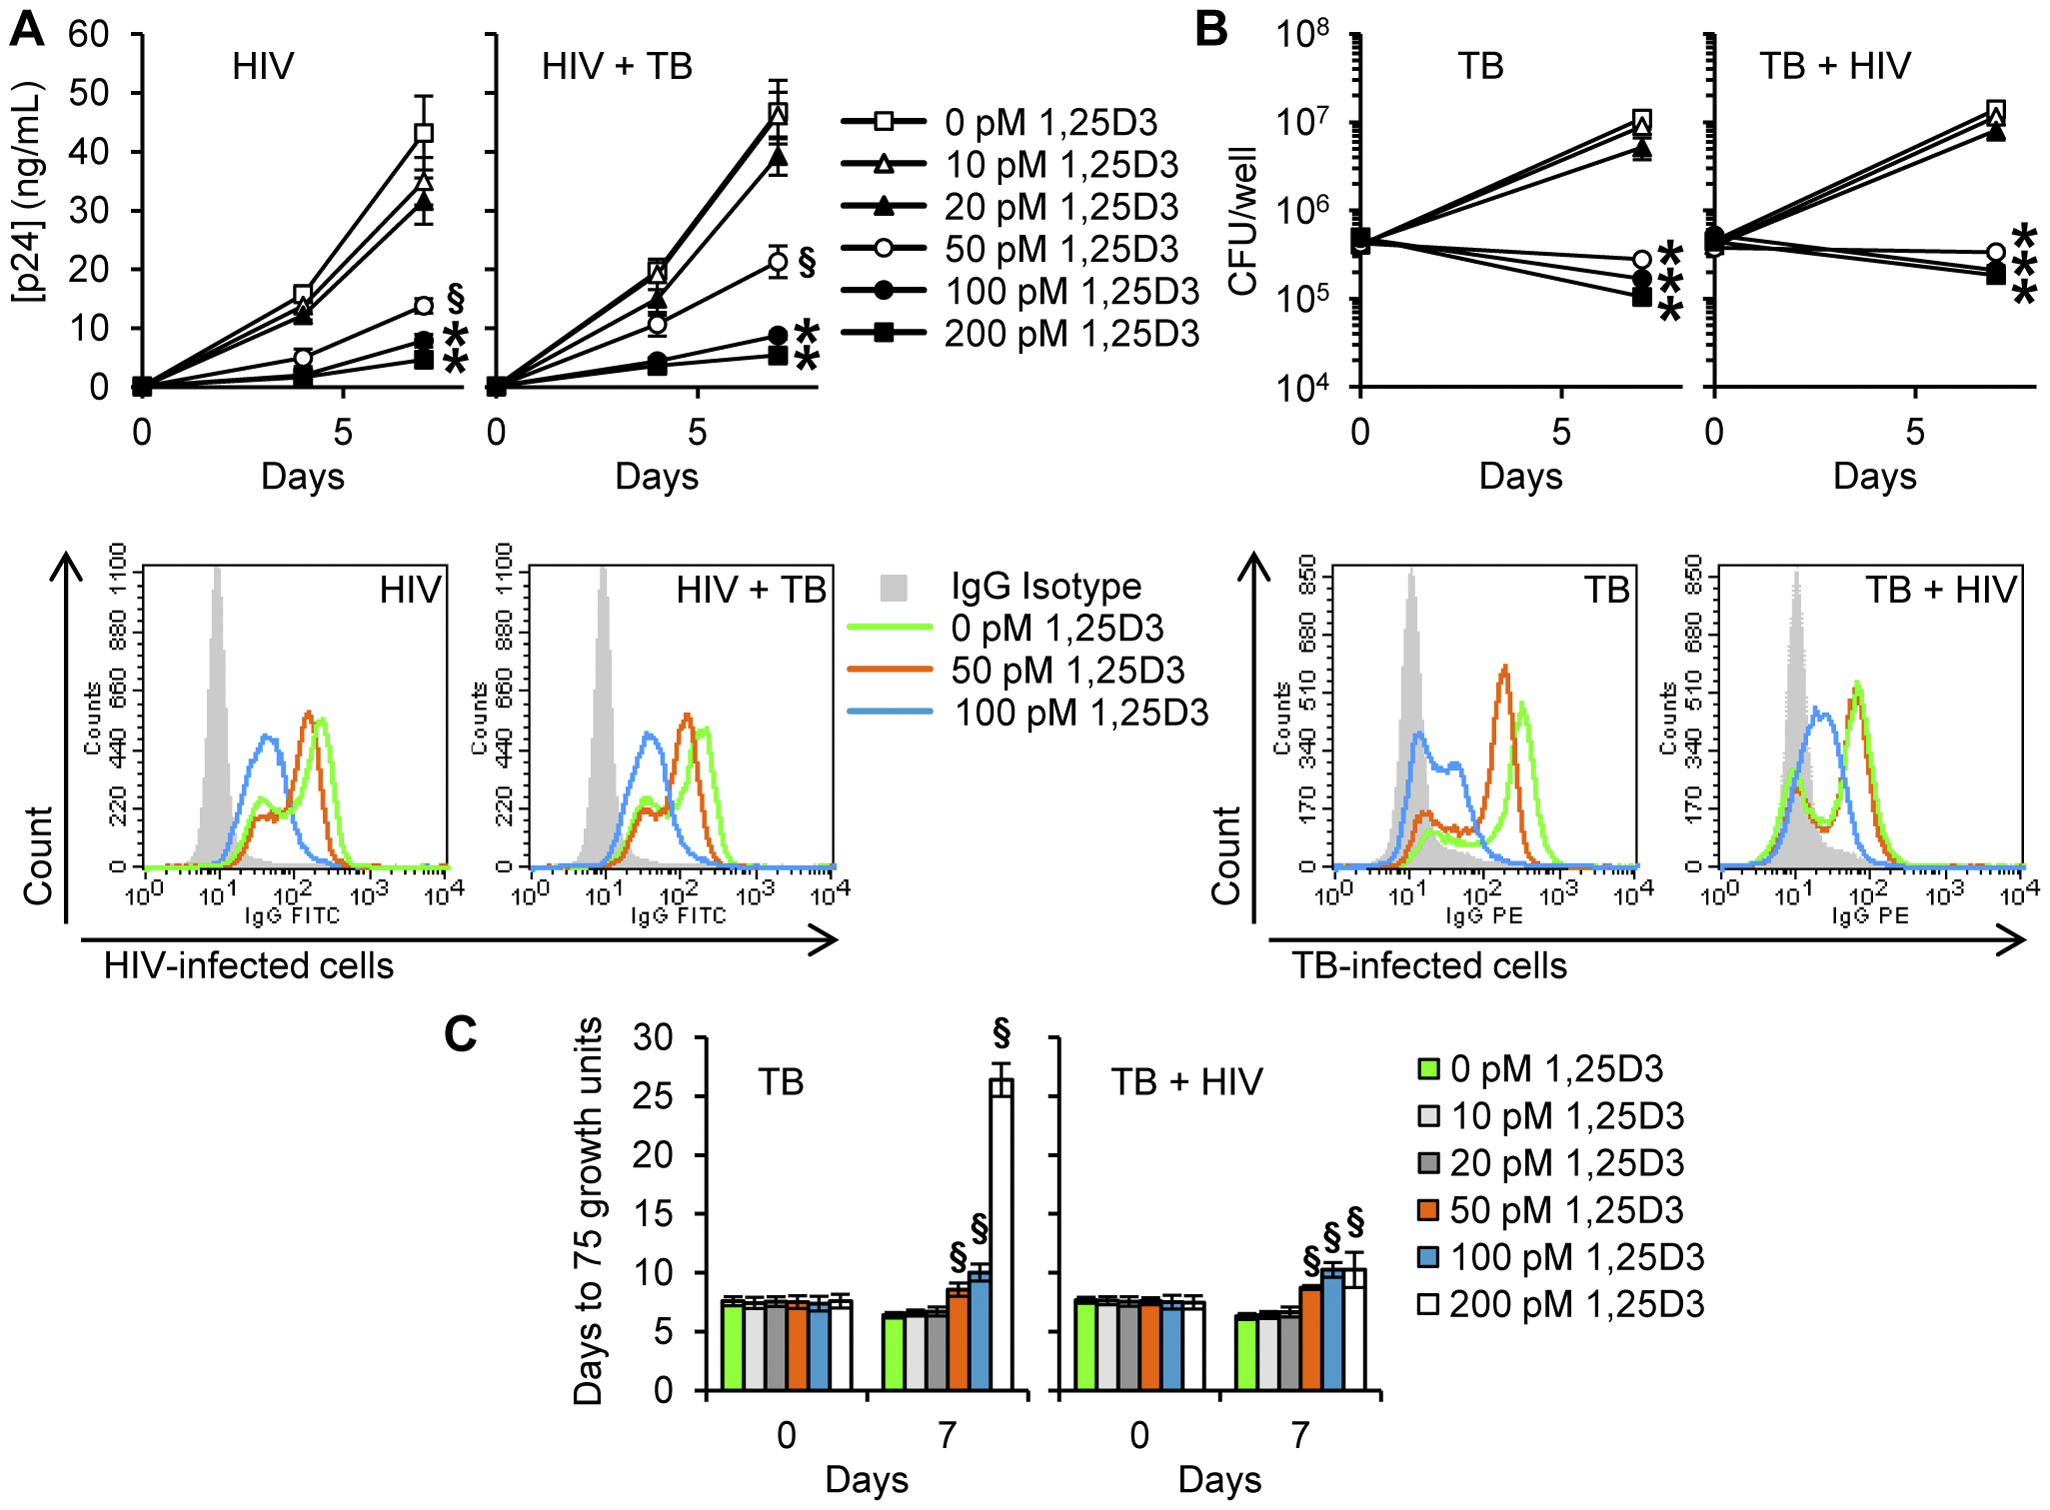 1,25D3 inhibits HIV and <i>M. tuberculosis</i> replication.